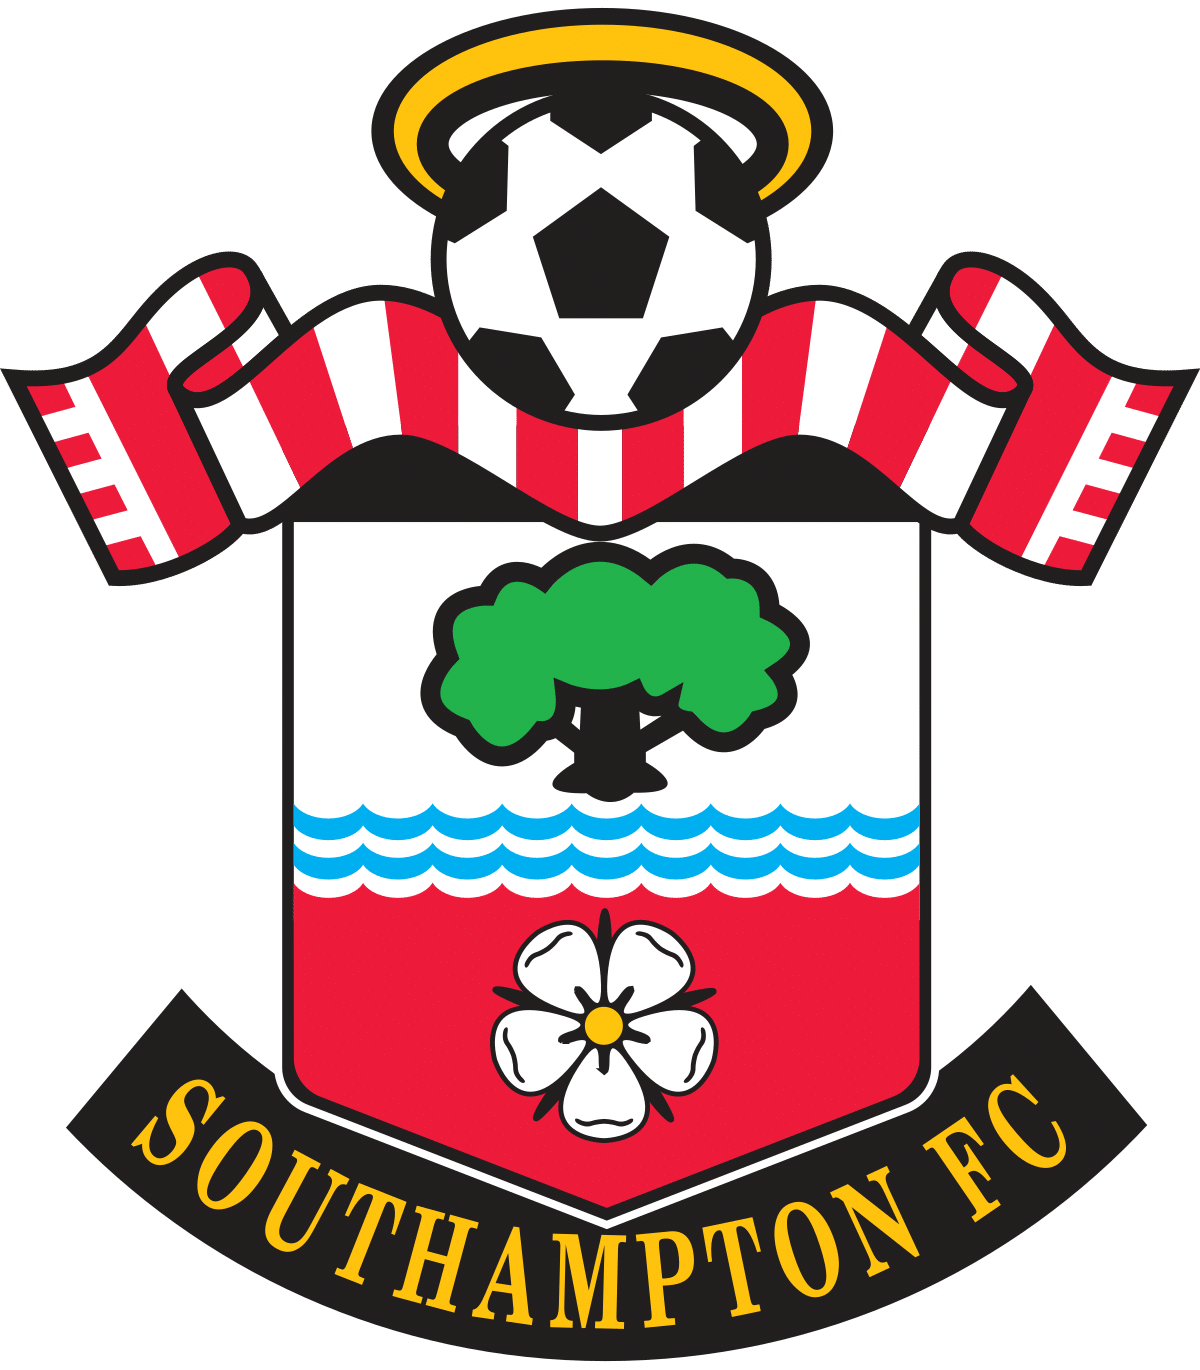 Southampton Badge